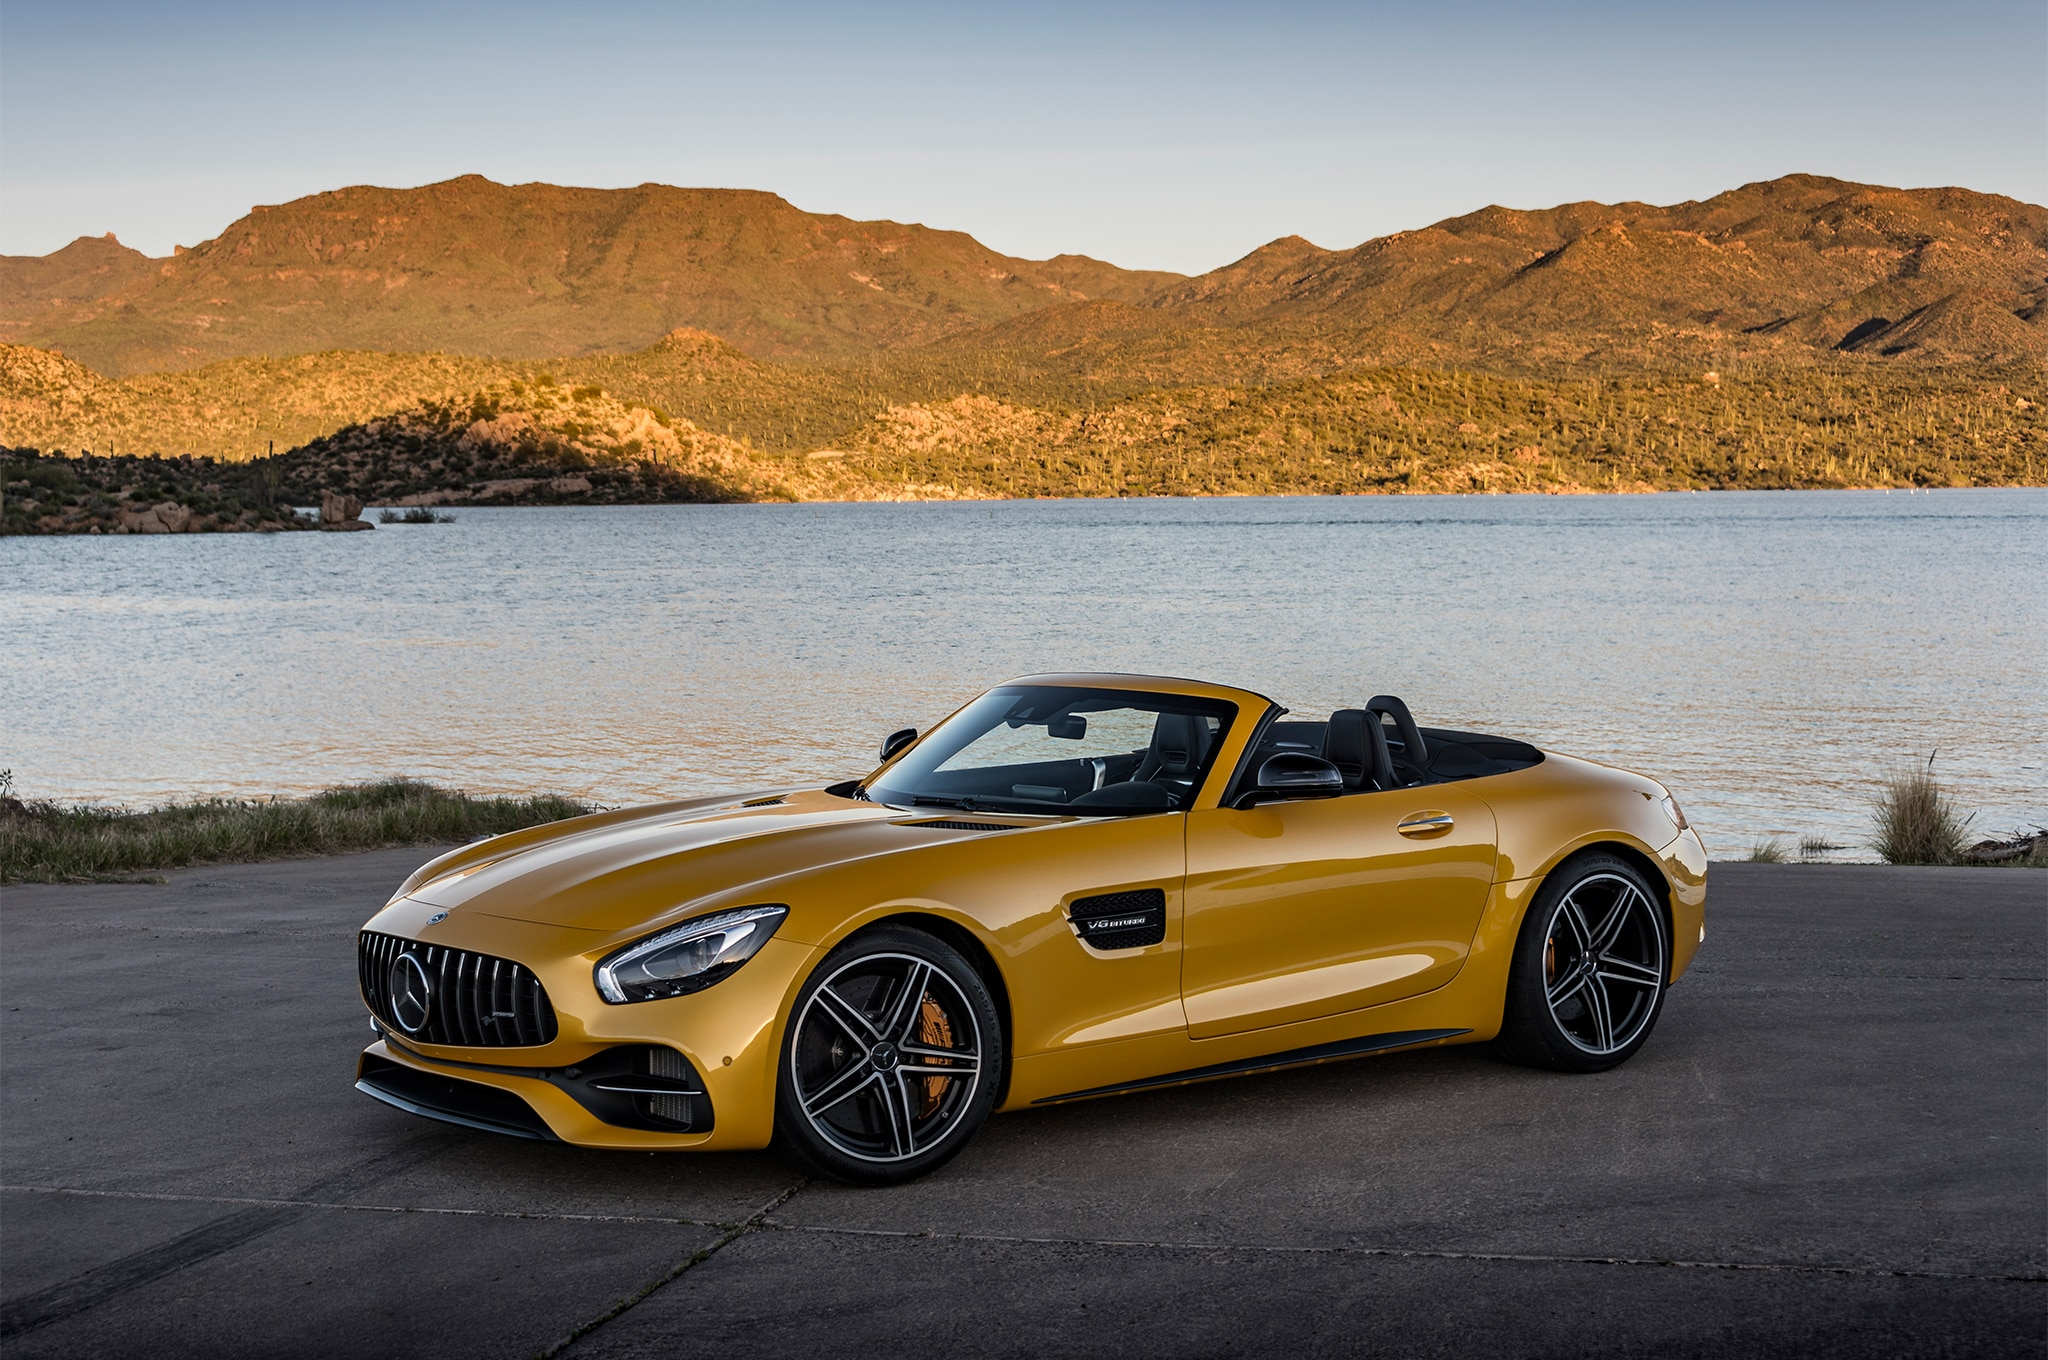 2018 mercedes amg gt and gt c roadster first drive review automobile magazine. Black Bedroom Furniture Sets. Home Design Ideas